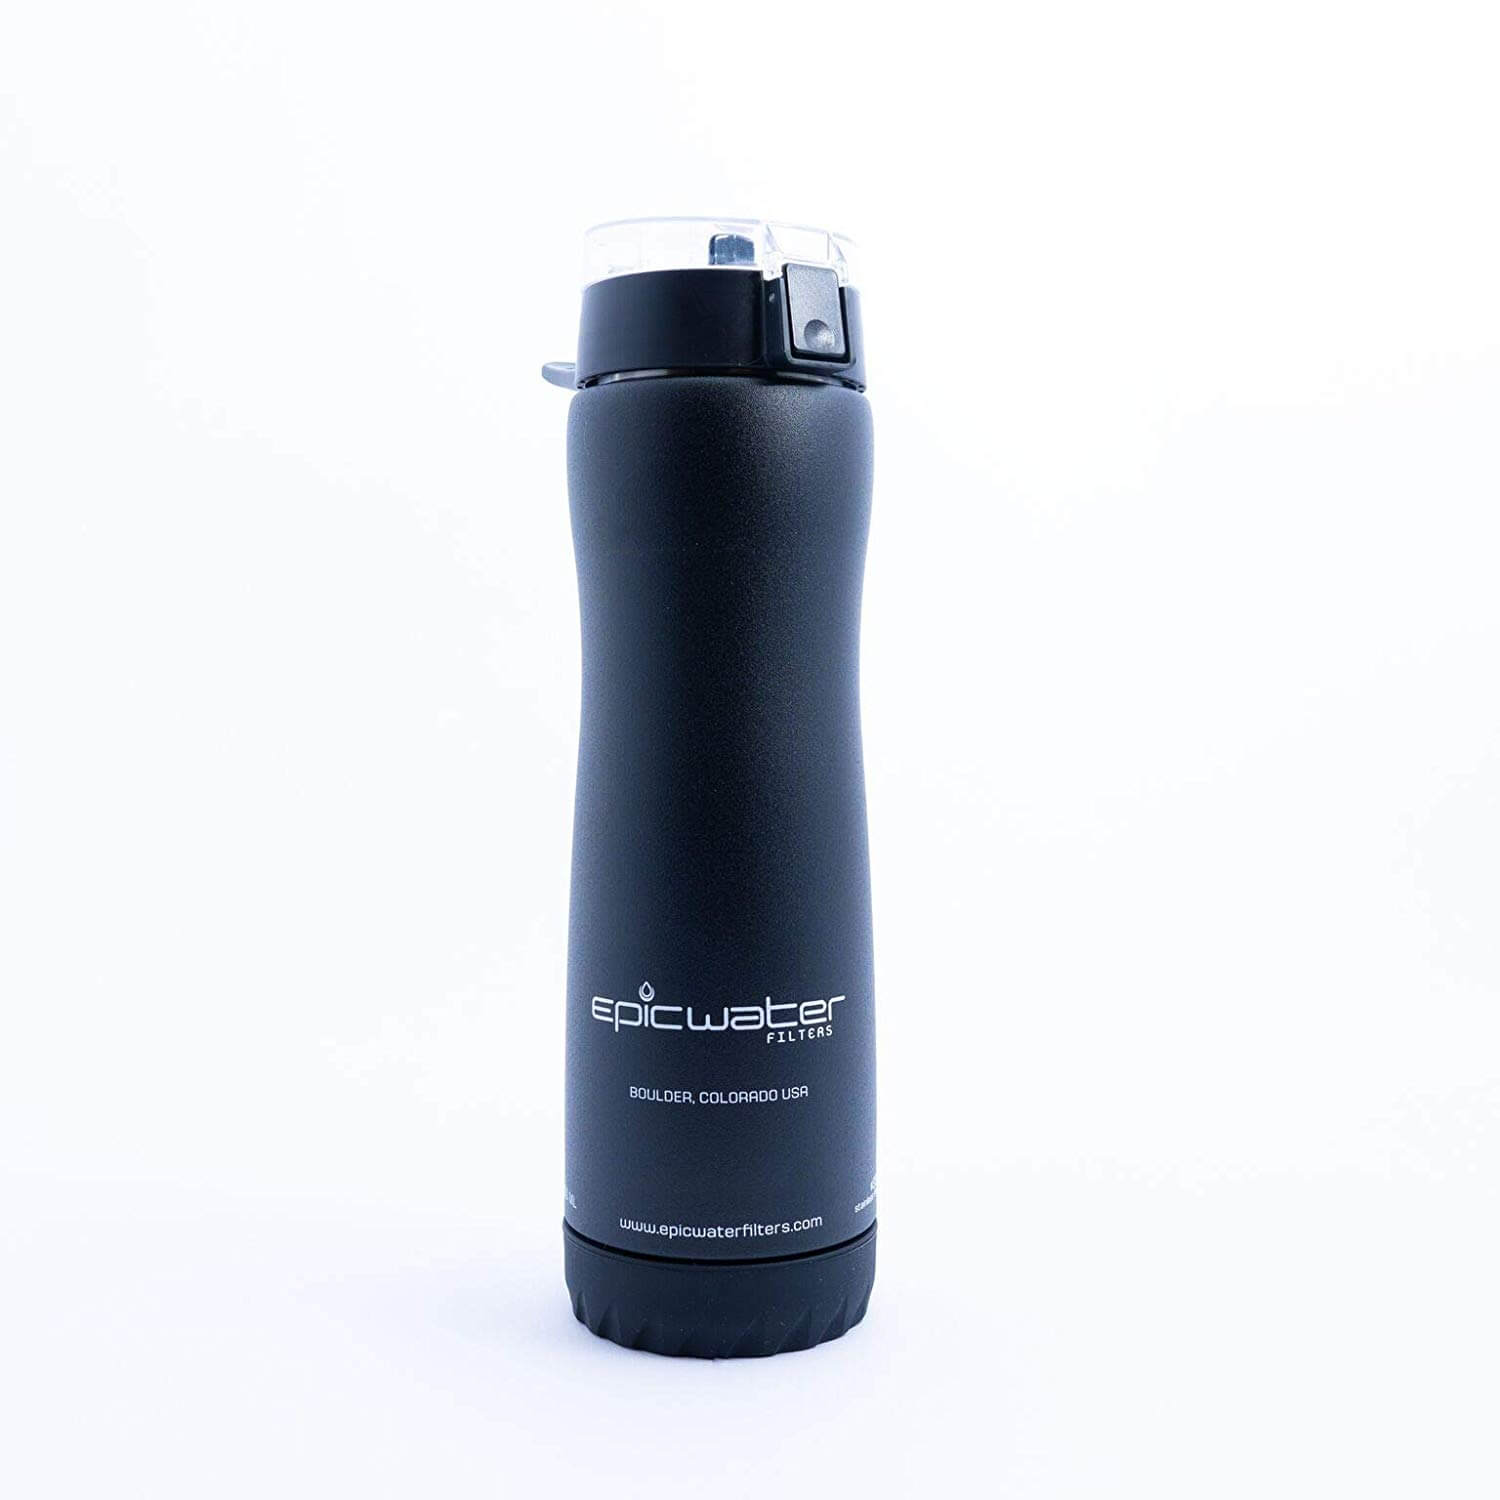 Outback Stainless Steel Water Filter Bottle - Best Stainless Steel Filtered Water Bottle